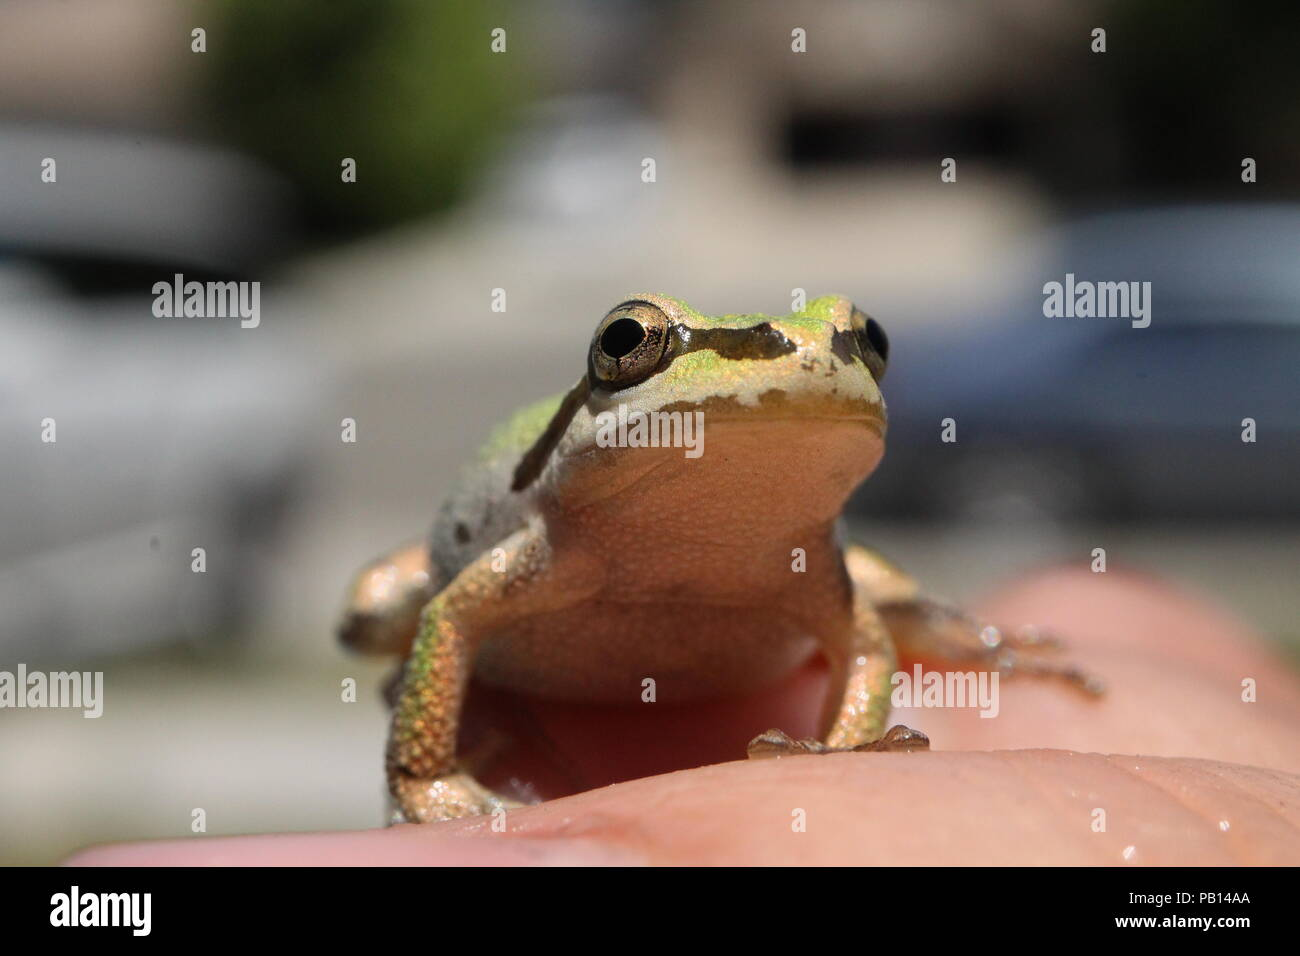 Found this guy swimming in pool, he was trying to stay cool in this summer heat. Luckily he found the water. - Stock Image